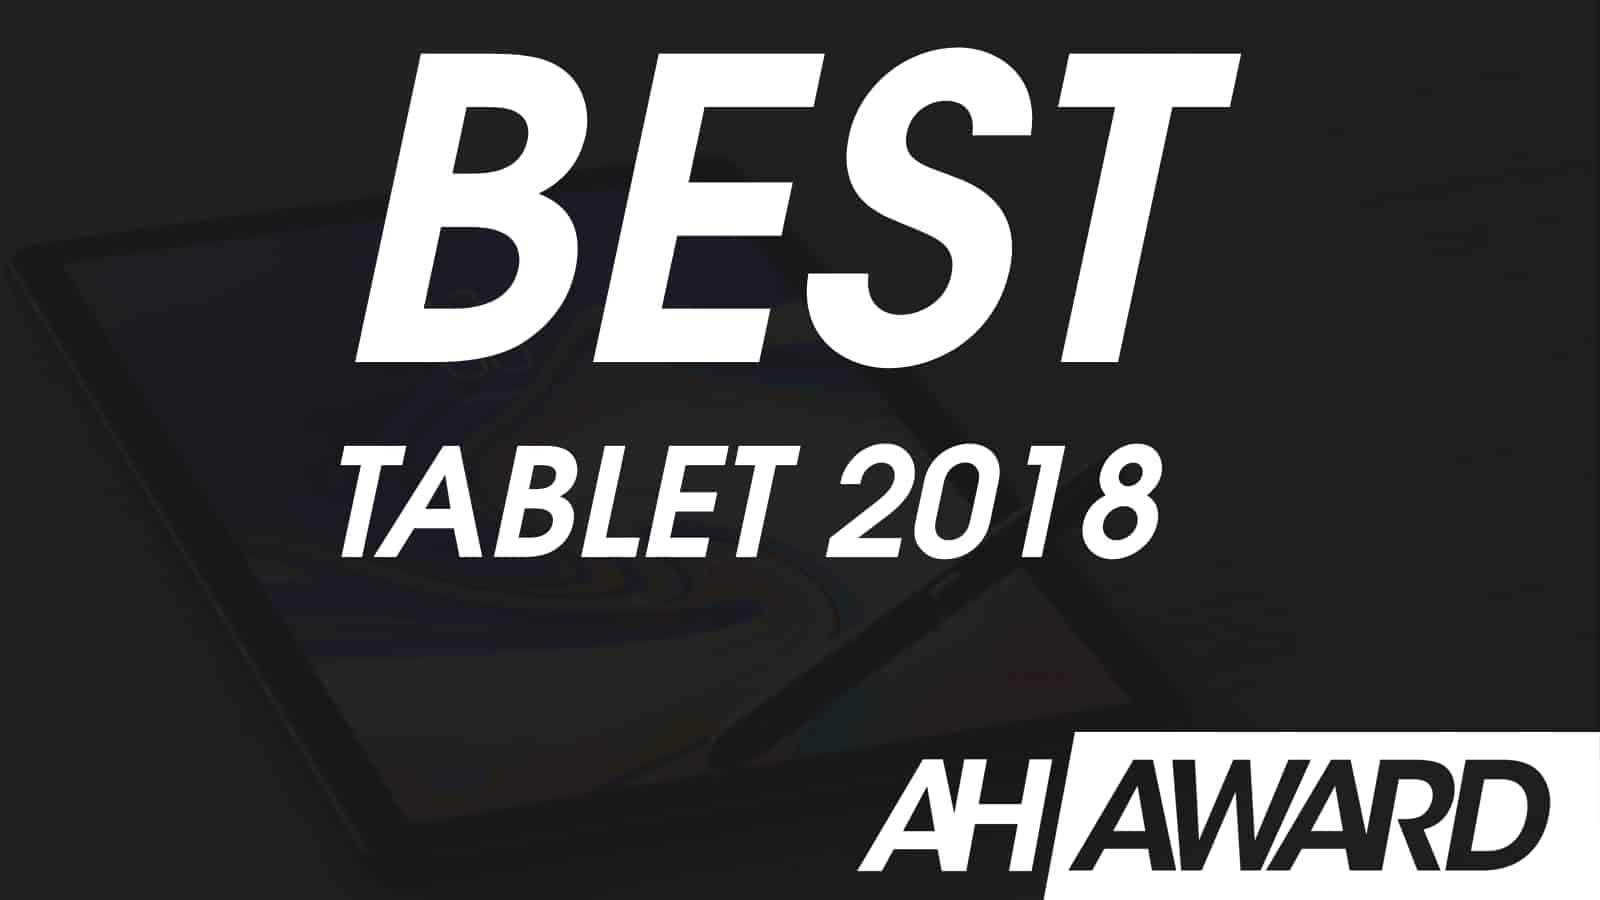 ANDROID HEADLINES AWARDS BEST TABLET 2018